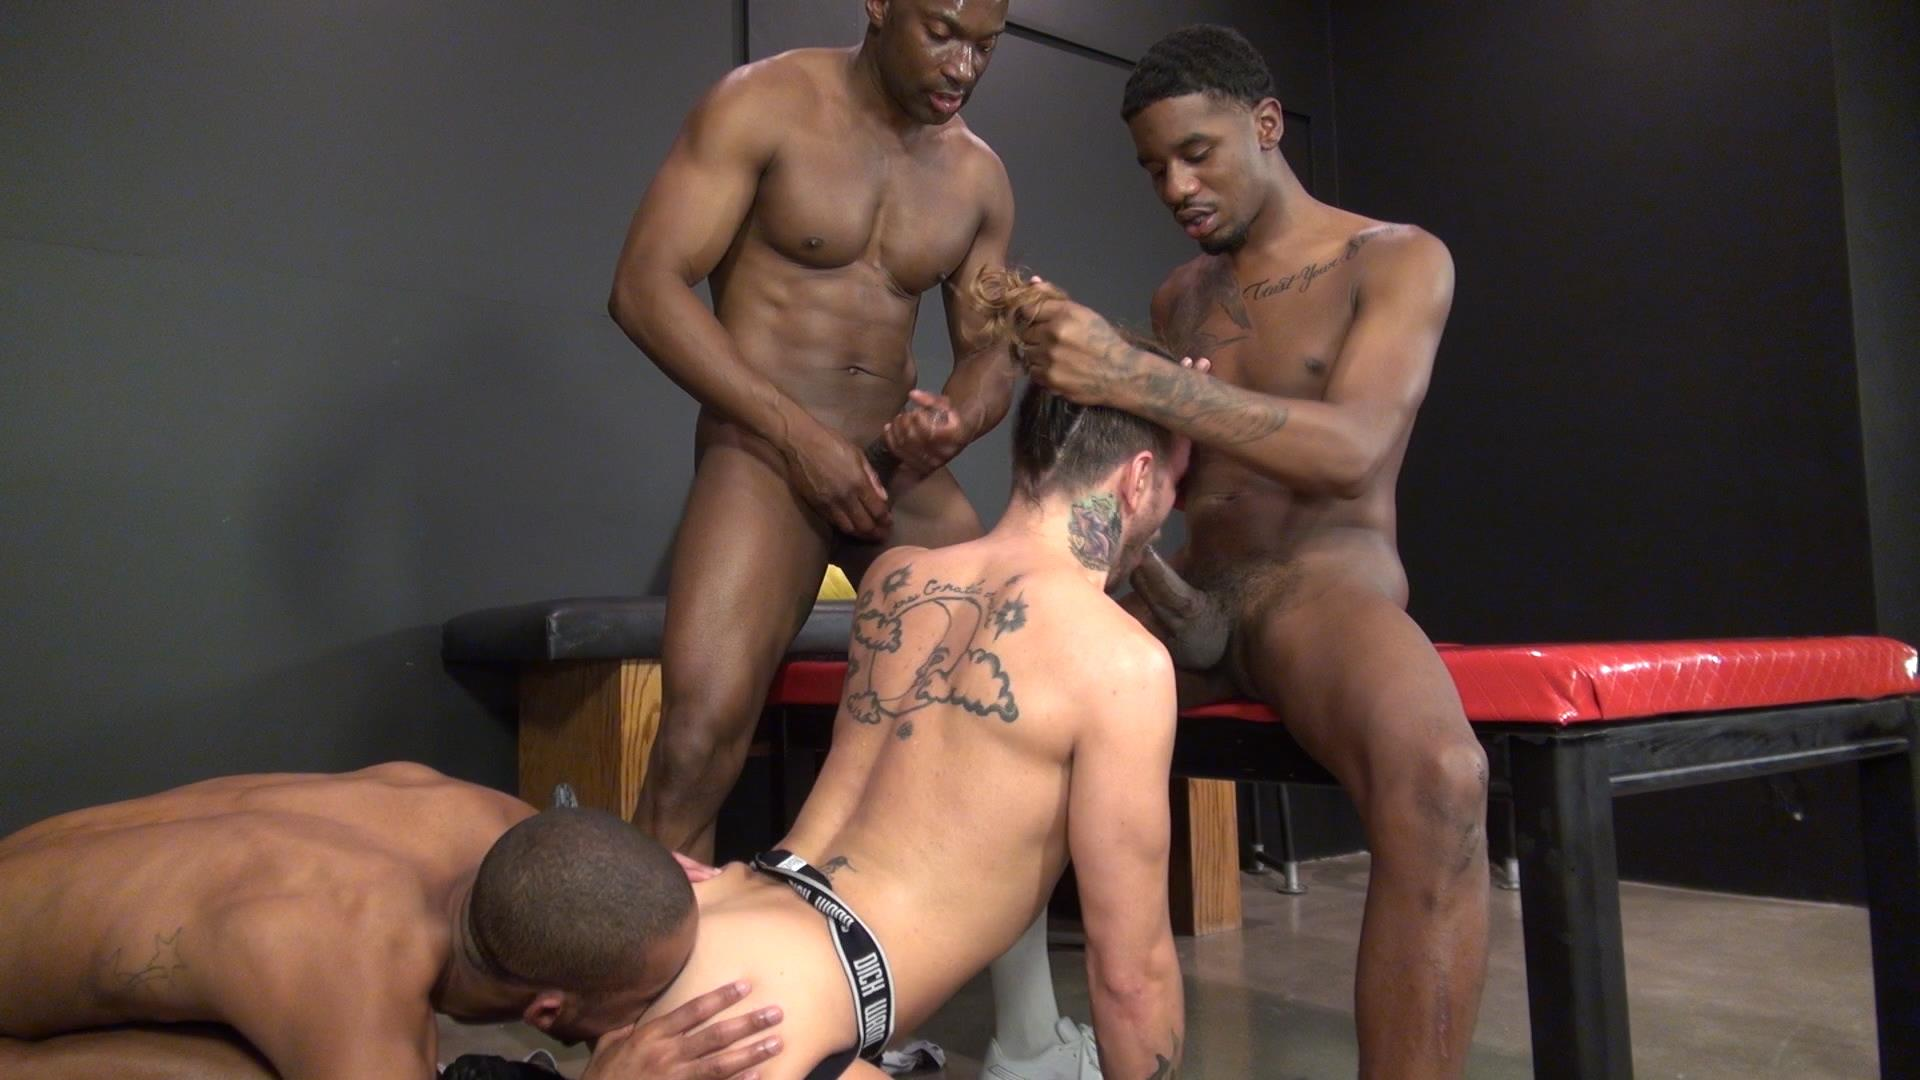 Gay black dick photos